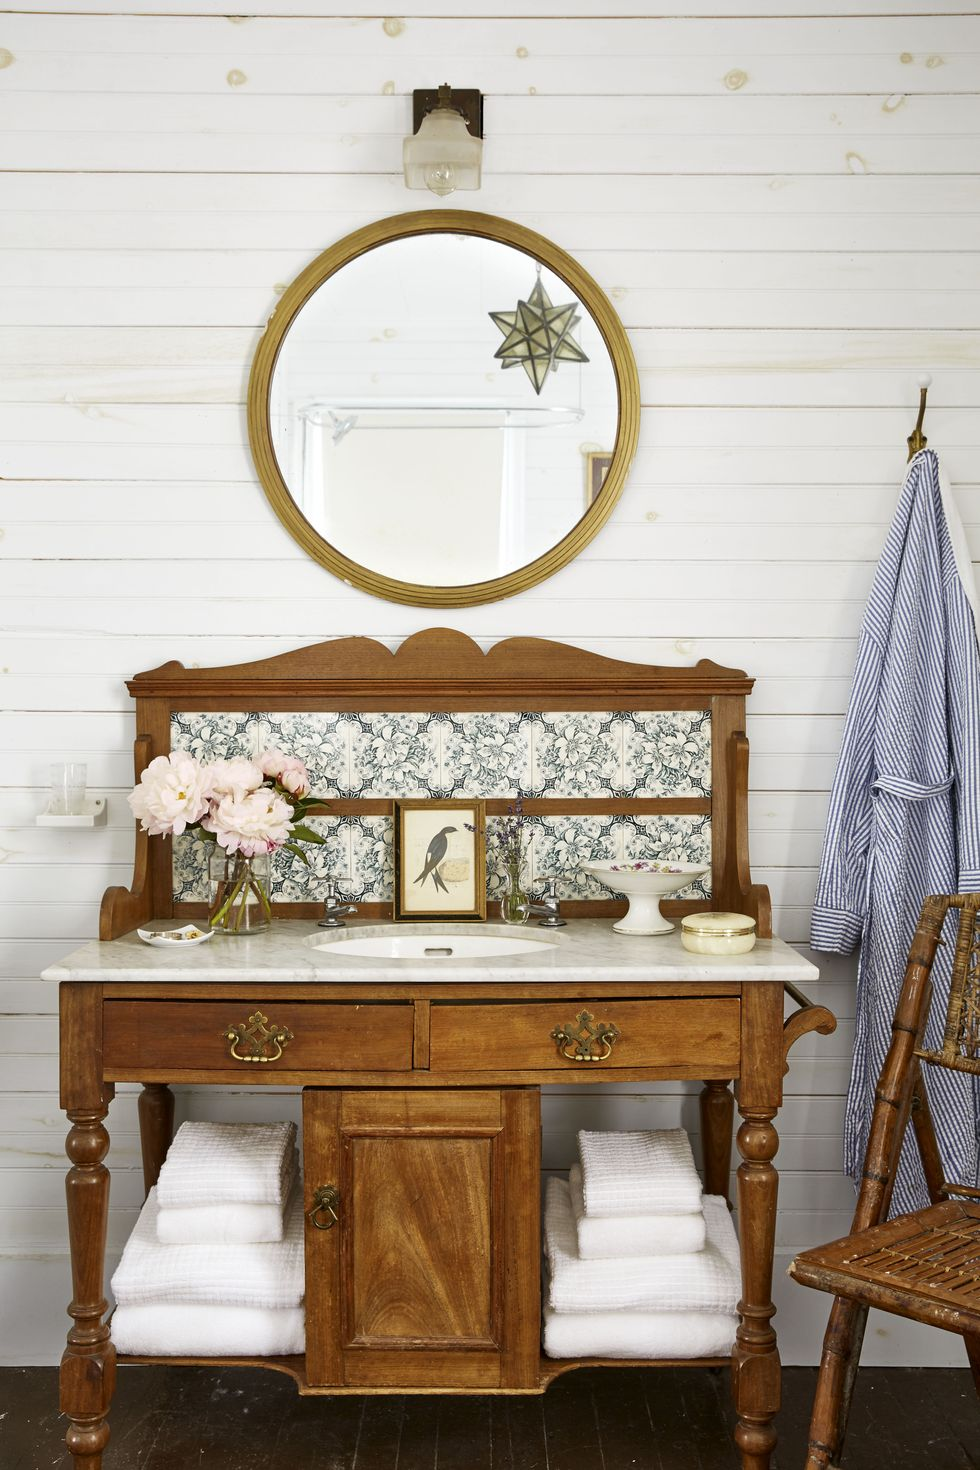 The bathroom can also have a rustic theme. Source: The Inter Course